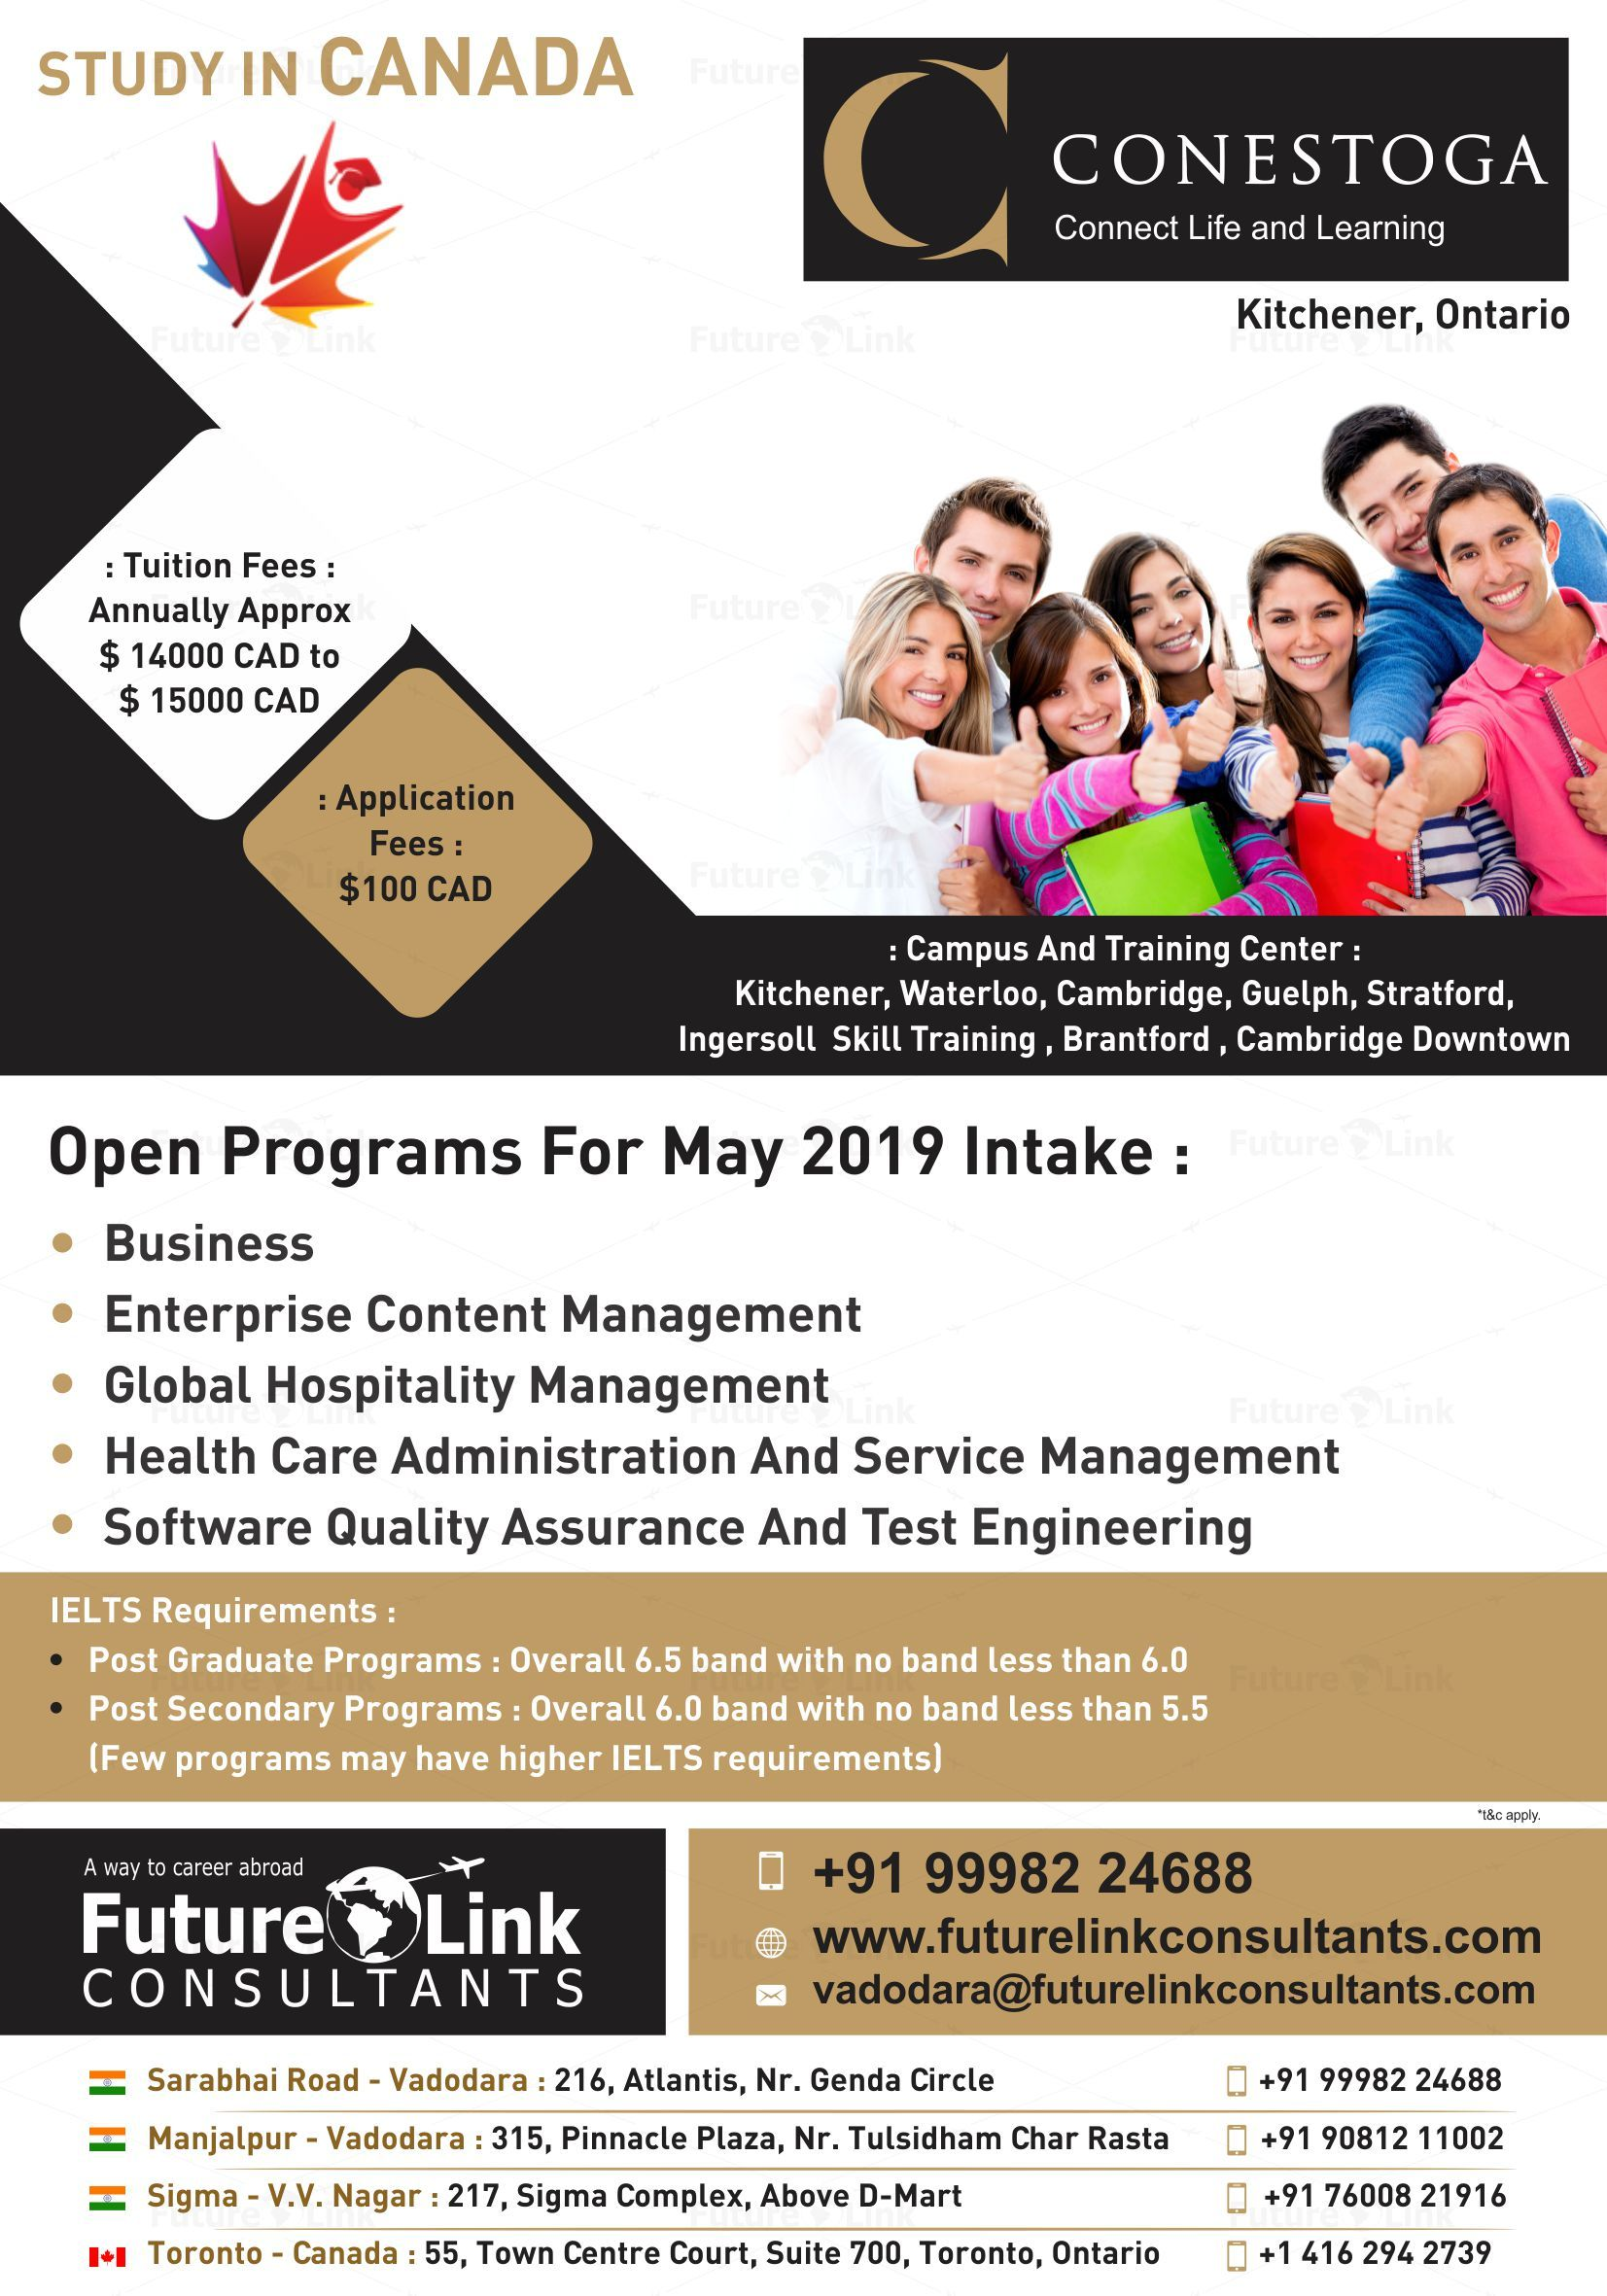 Build Your Career In Canada By Studying In Conestoga College Kitchener Ontario Canada Study Program Canada Enterprise Content Management